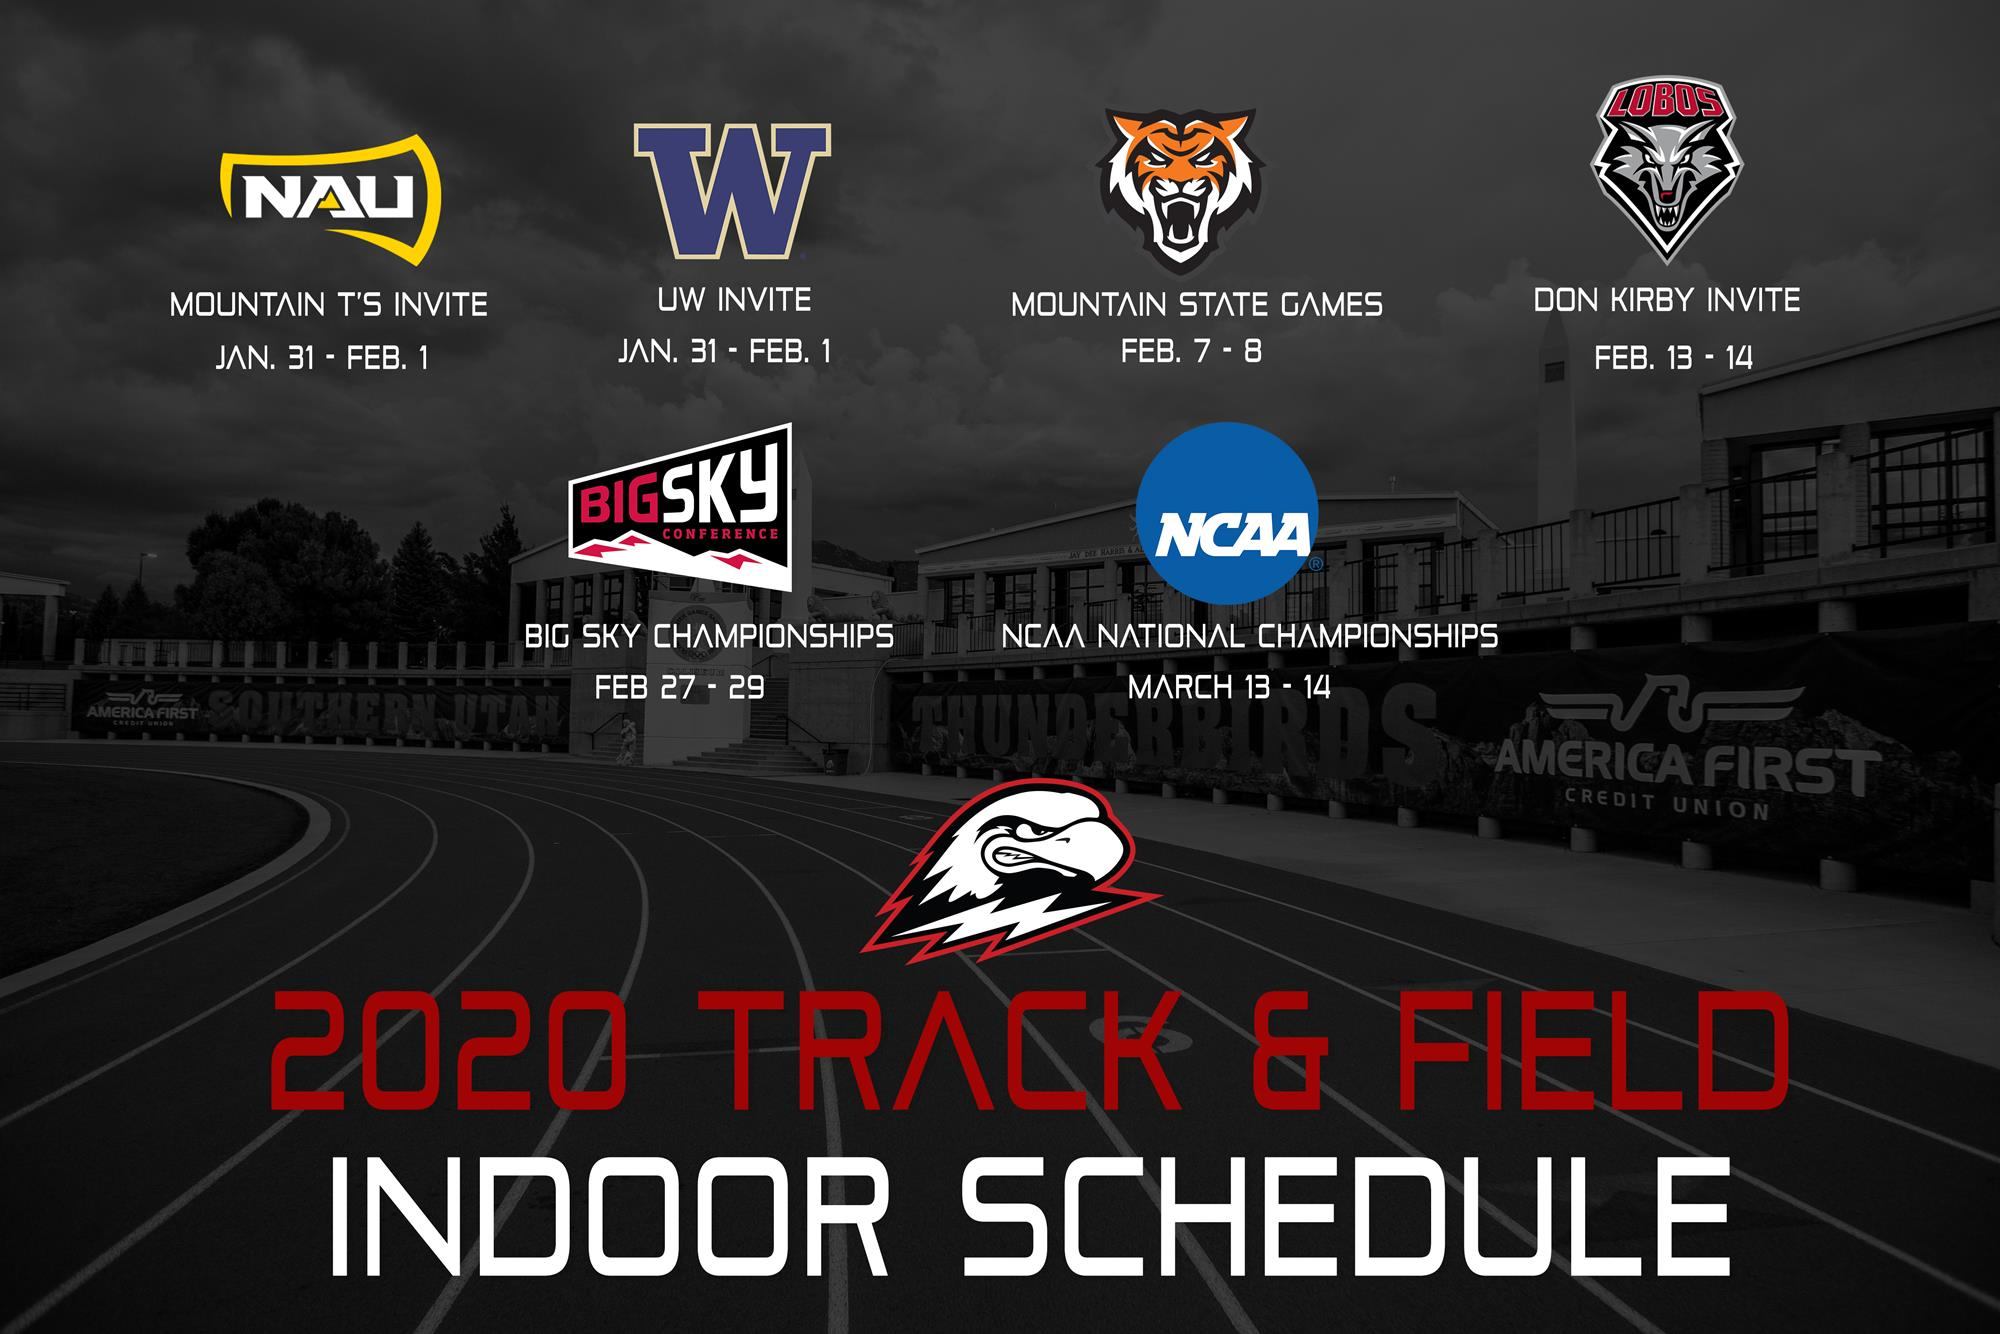 Bowl Games 2020 Schedule.Thunderbird Track And Field Announces 2020 Indoor Schedule